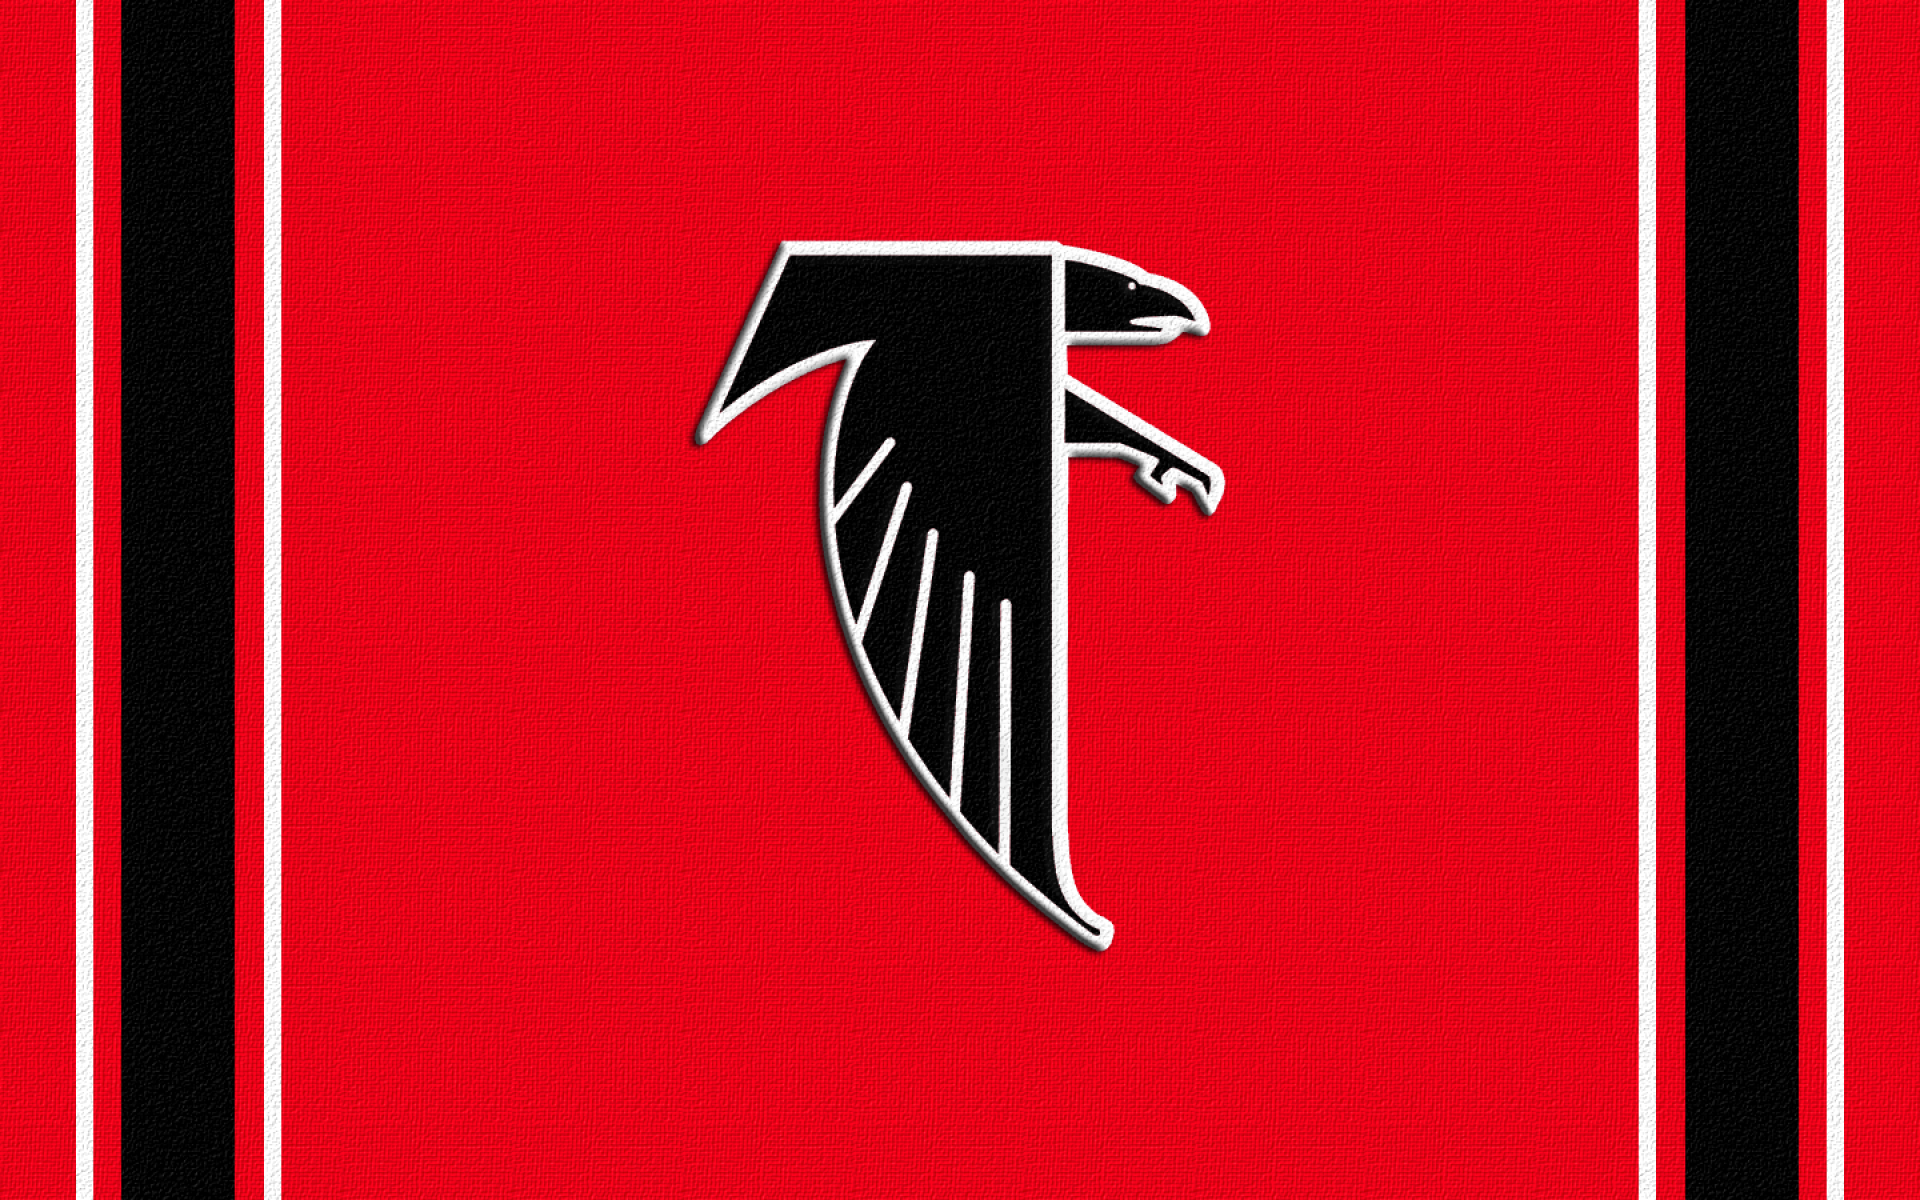 Atlanta falcons wallpaper original logo veston phifer atlanta falcons wallpaper original logo voltagebd Images